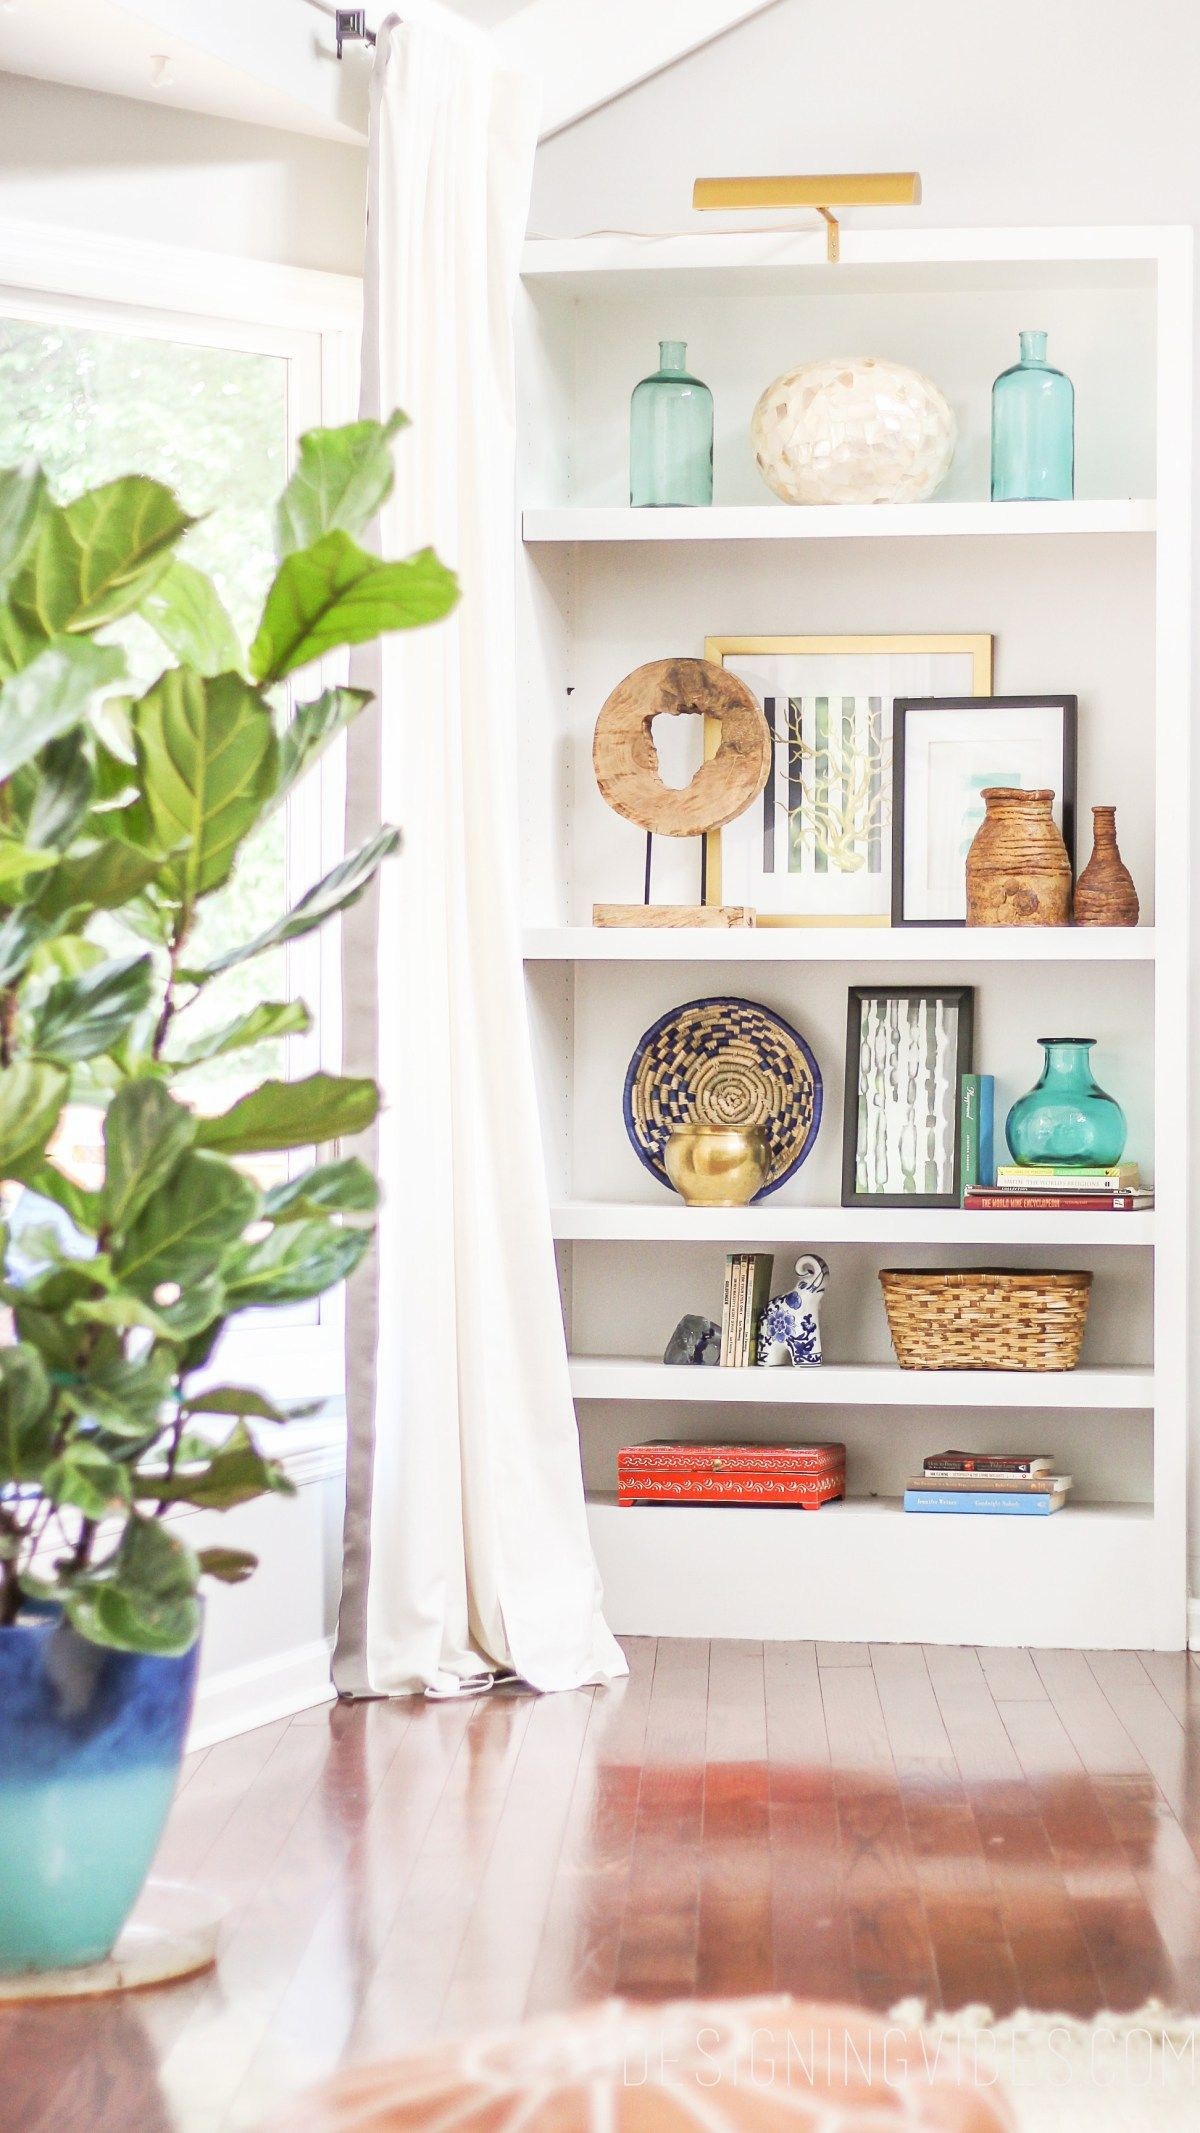 Summer Eclectic Home Tour Boho Chic Decor Funky Home Decor Eclectic Home Home Decor